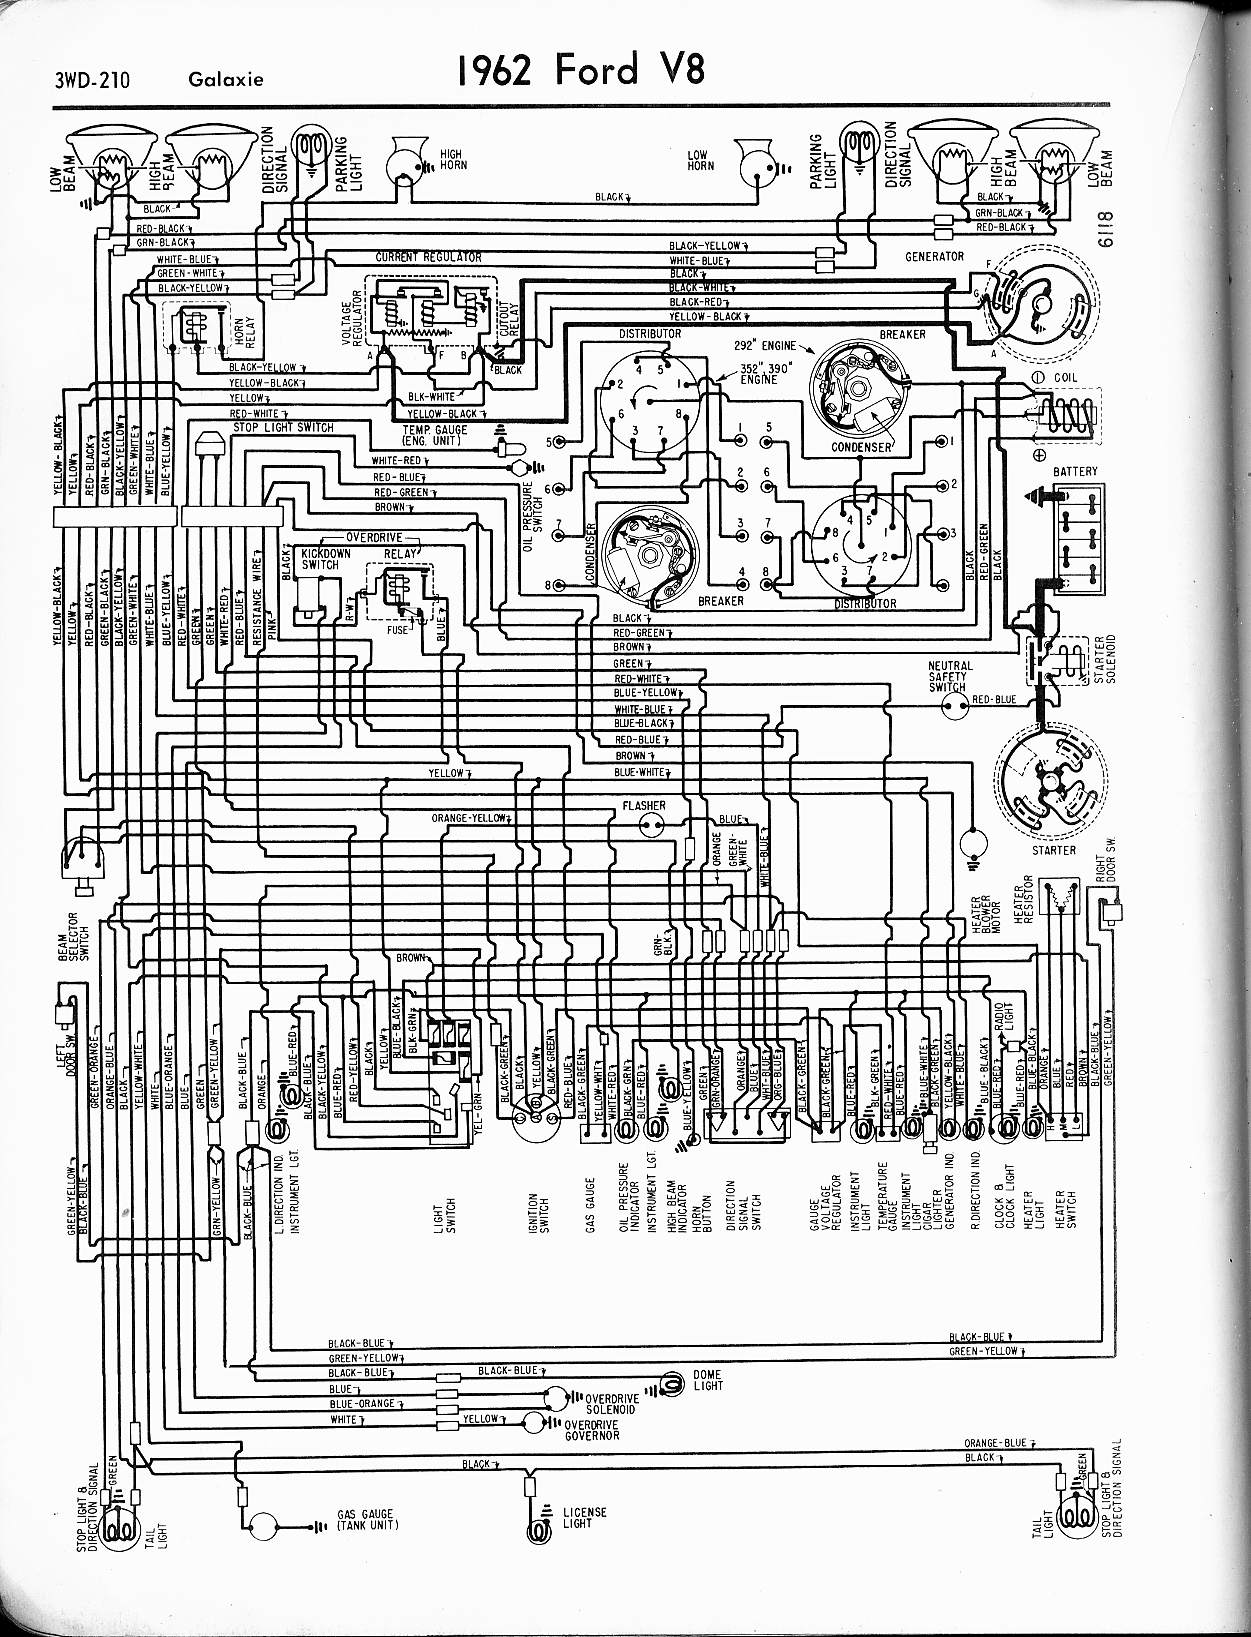 Ford Fairlane Au Fuse Box Diagram - Wiring Diagram Online on ar diagram, pe diagram, vg diagram, ac diagram, cd diagram, vn diagram, pt diagram, ro diagram, ba diagram,